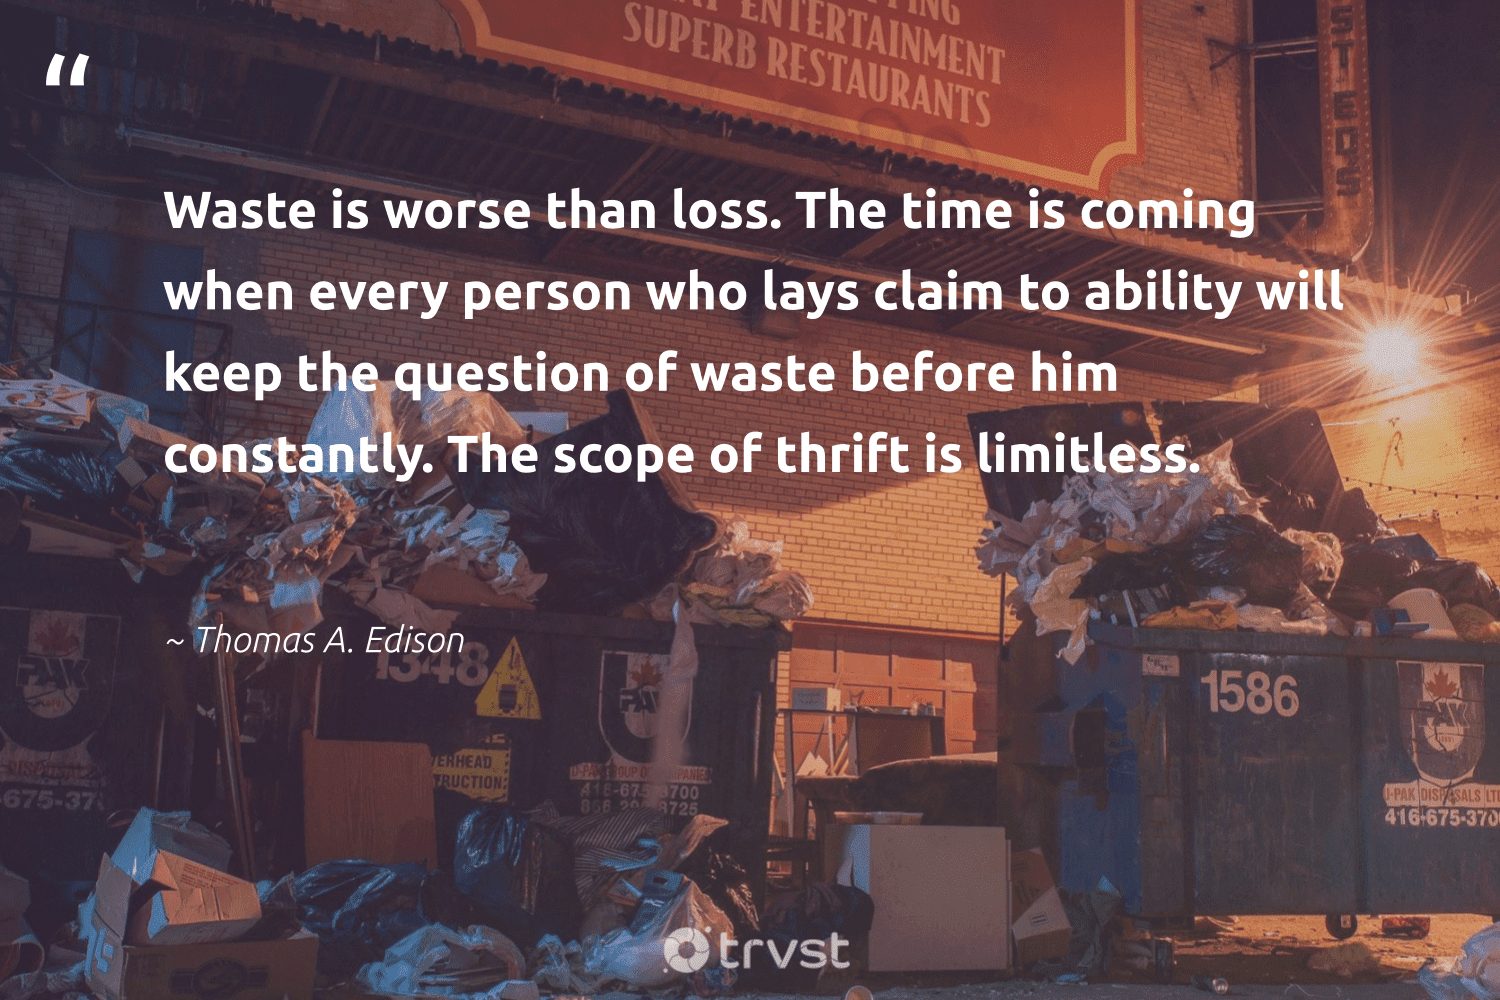 """""""Waste is worse than loss. The time is coming when every person who lays claim to ability will keep the question of waste before him constantly. The scope of thrift is limitless.""""  - Thomas A. Edison #trvst #quotes #waste #thrift #betterfortheplanet #beinspired #plantbased #bethechange #greenliving #socialimpact #trash #impact"""